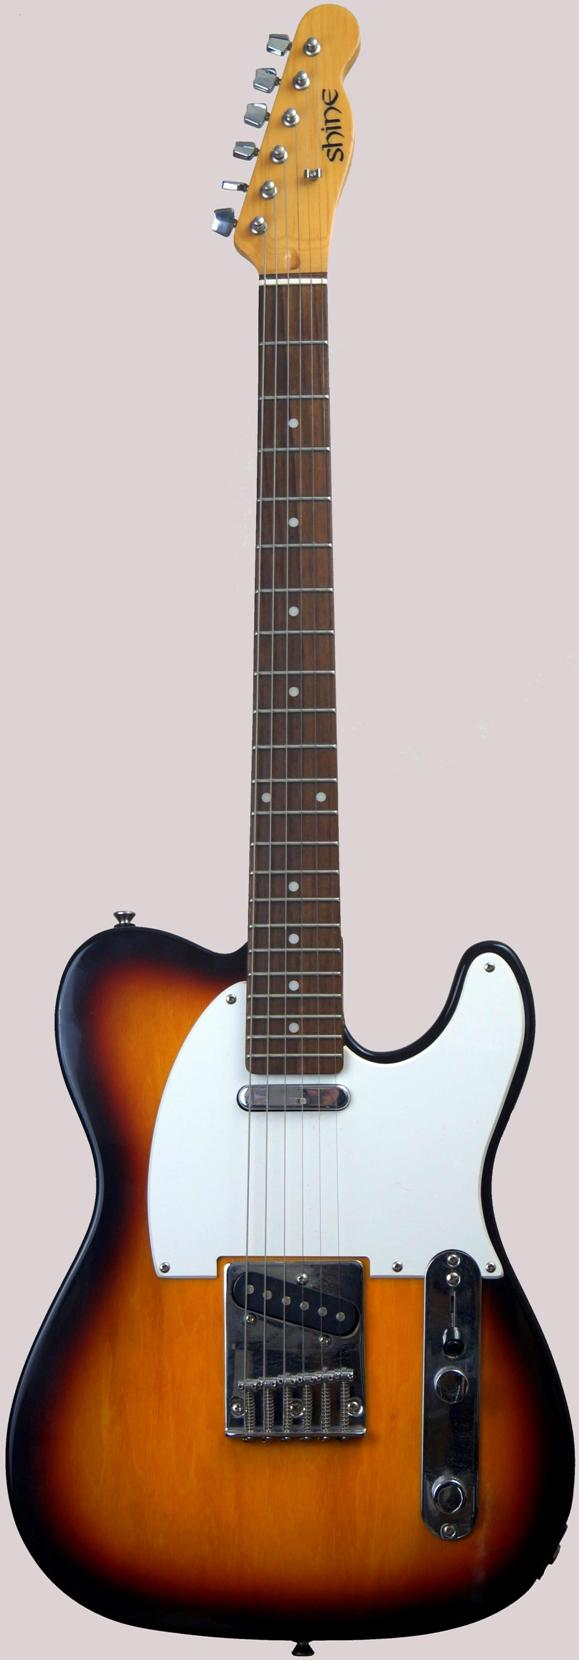 Shine si30 Telecaster sunburst guitar at Ukulele Corner